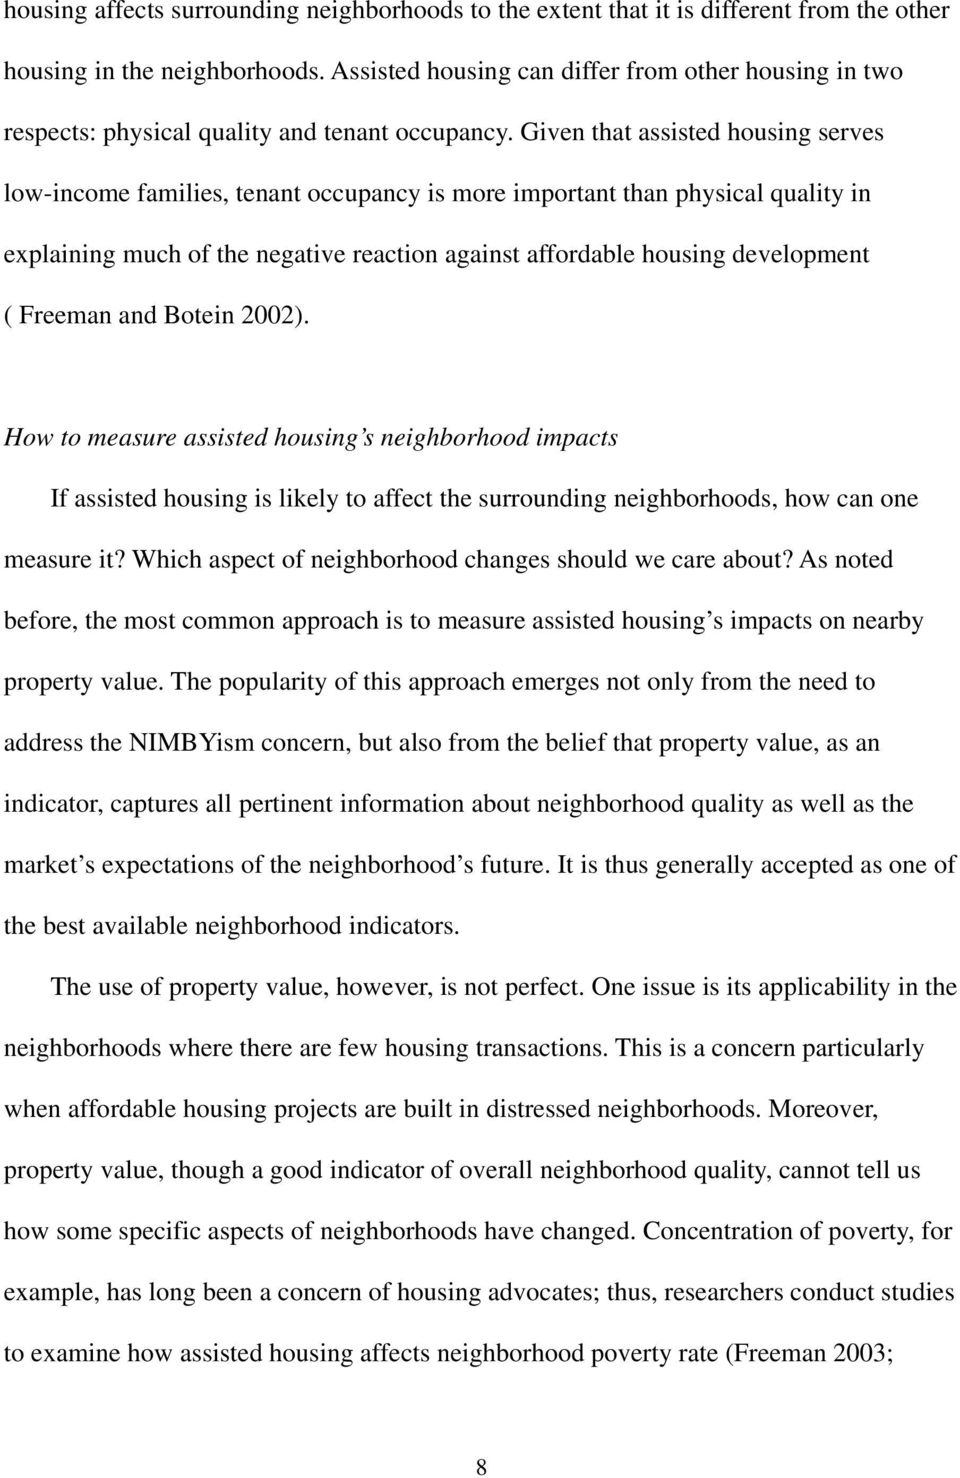 Given that assisted housing serves low-income families, tenant occupancy is more important than physical quality in explaining much of the negative reaction against affordable housing development (